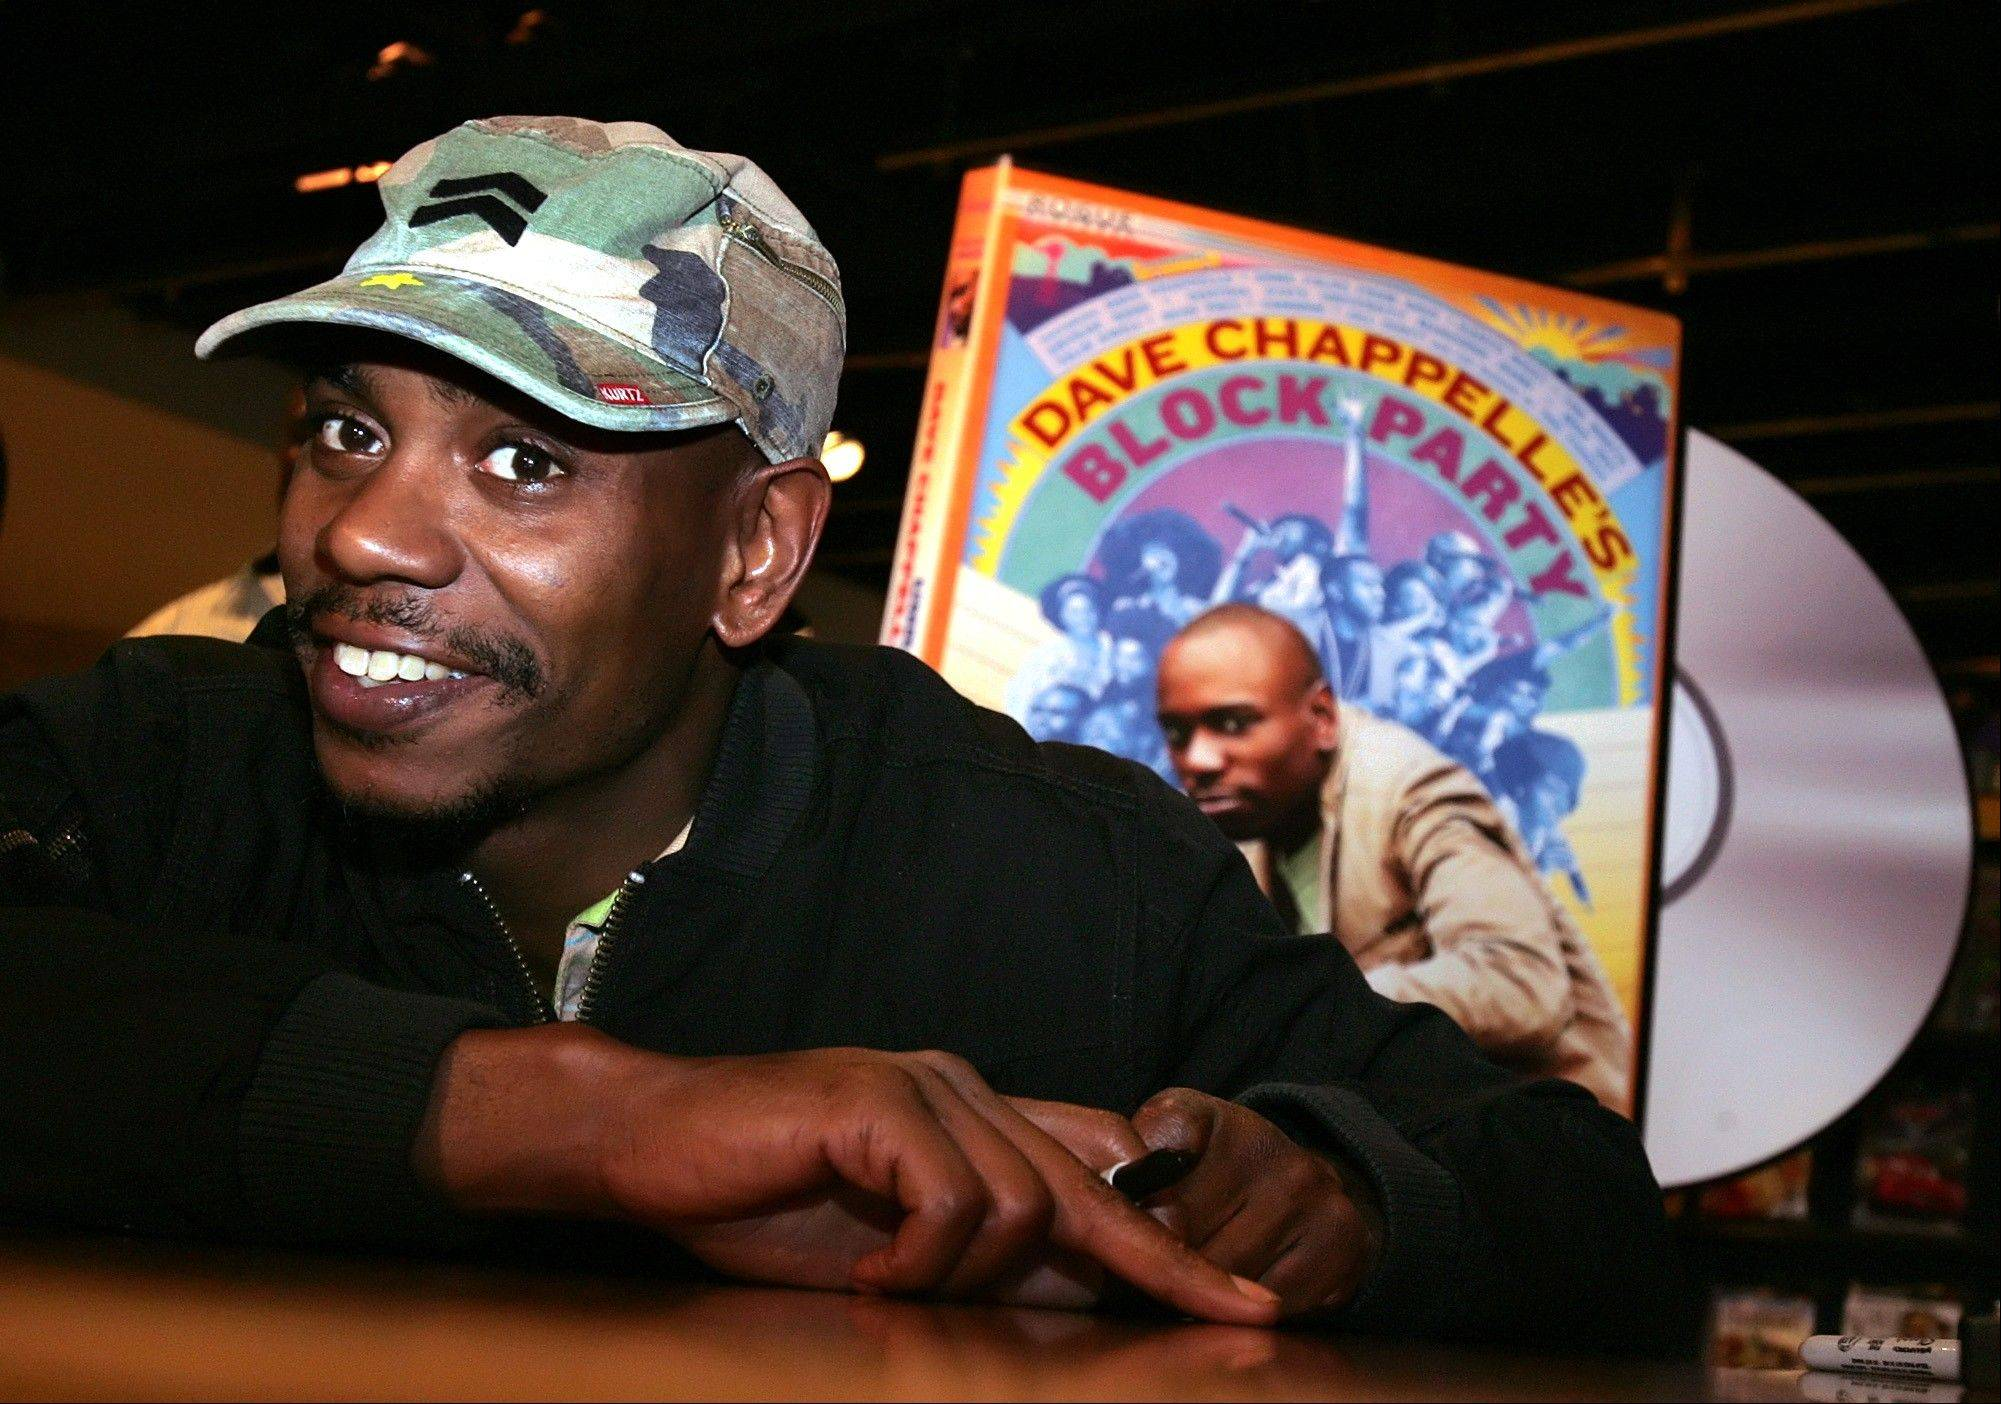 Comedian Dave Chappelle will make his most substantial return to stand-up comedy in a monthlong tour for Funny Or Die. He�s coming to the First Midwest Bank Amphitheatre in Tinley Park on Saturday, Aug. 31.